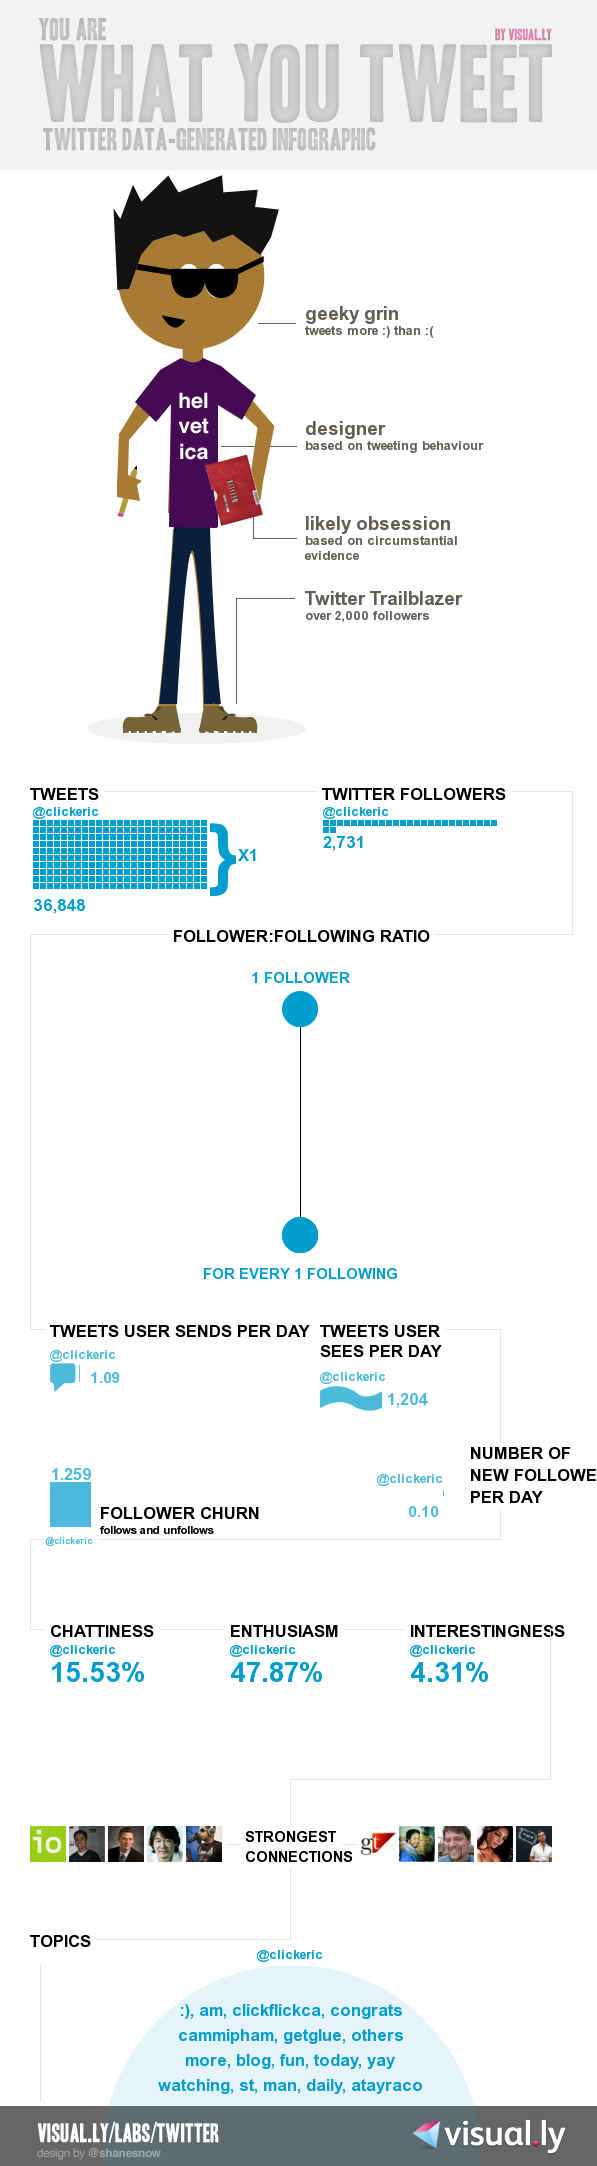 clickeric twitter infographic generated by visual.ly